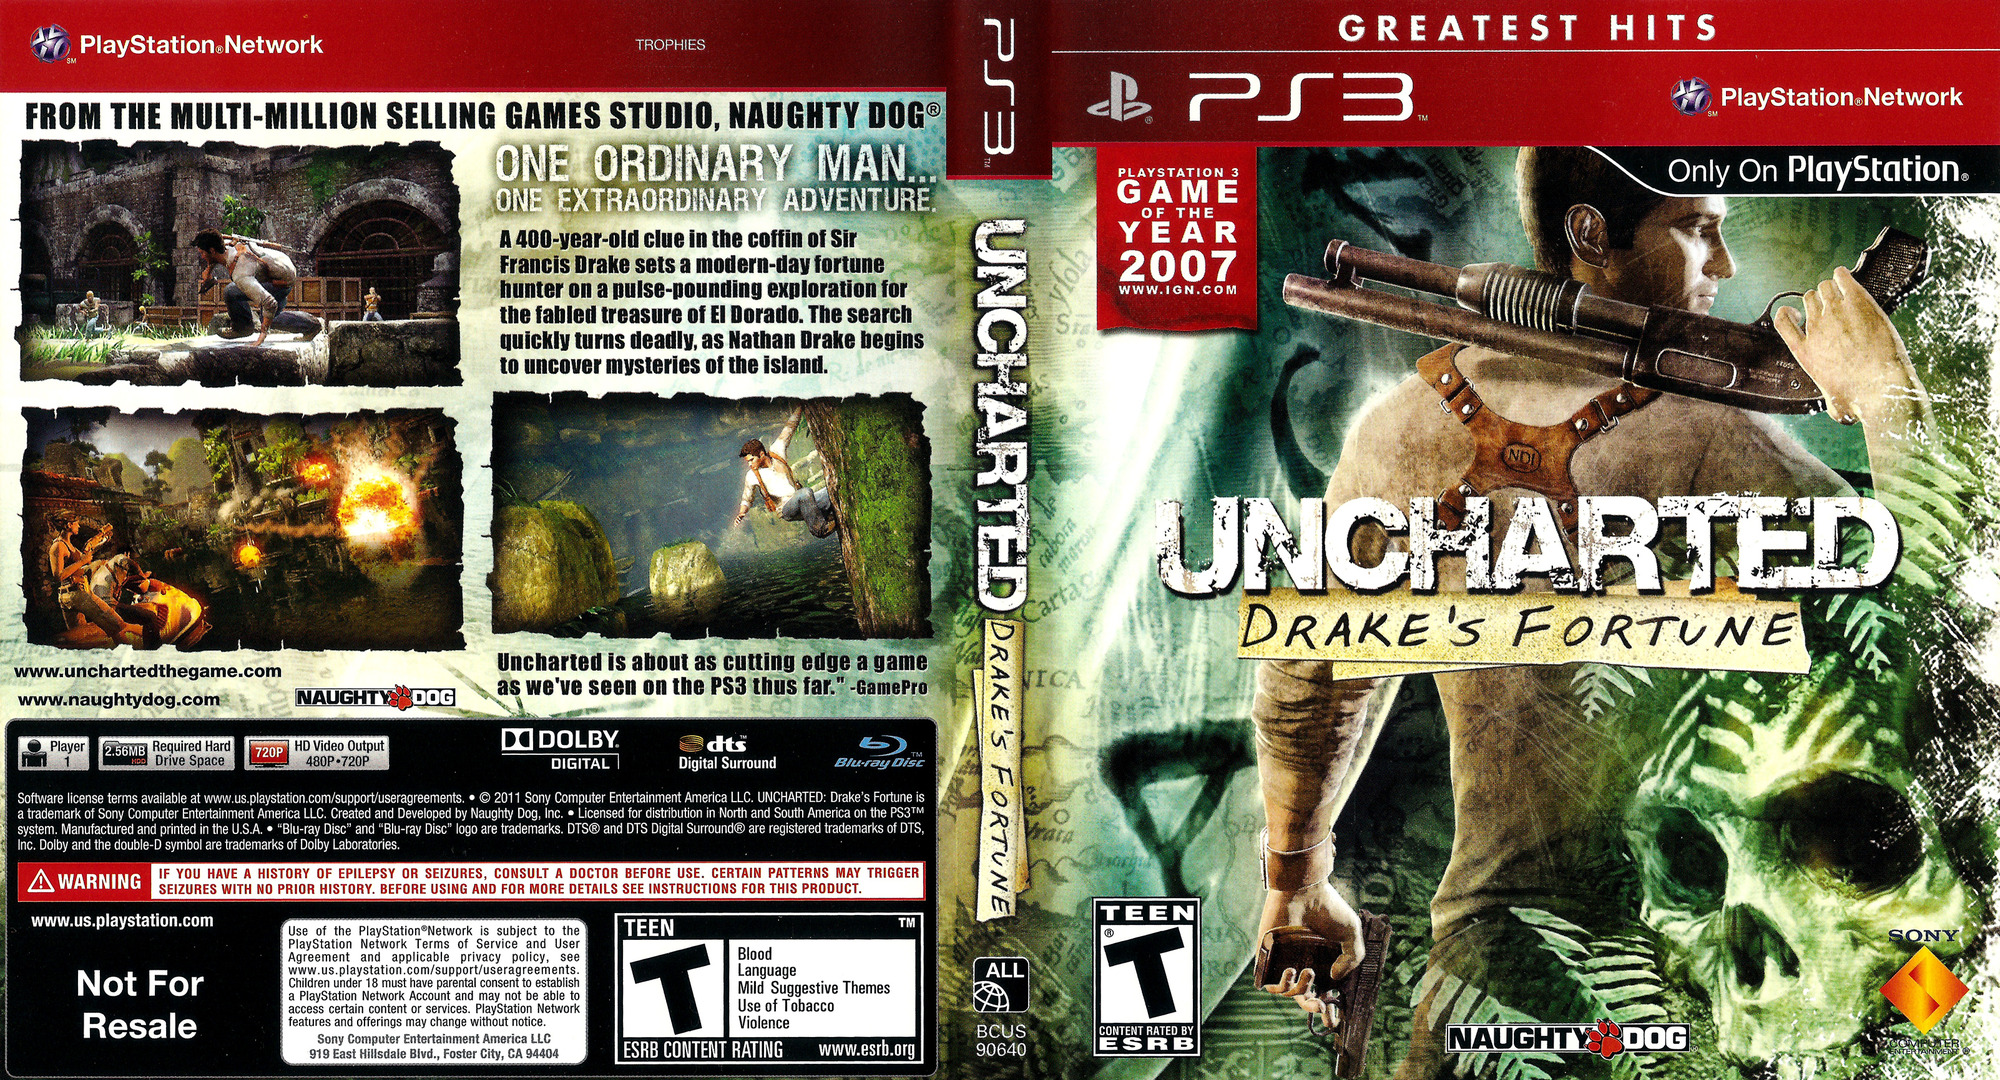 Uncharted: Drake's Fortune (Greatest Hits) PS3 coverfullHQ (BCUS90640)